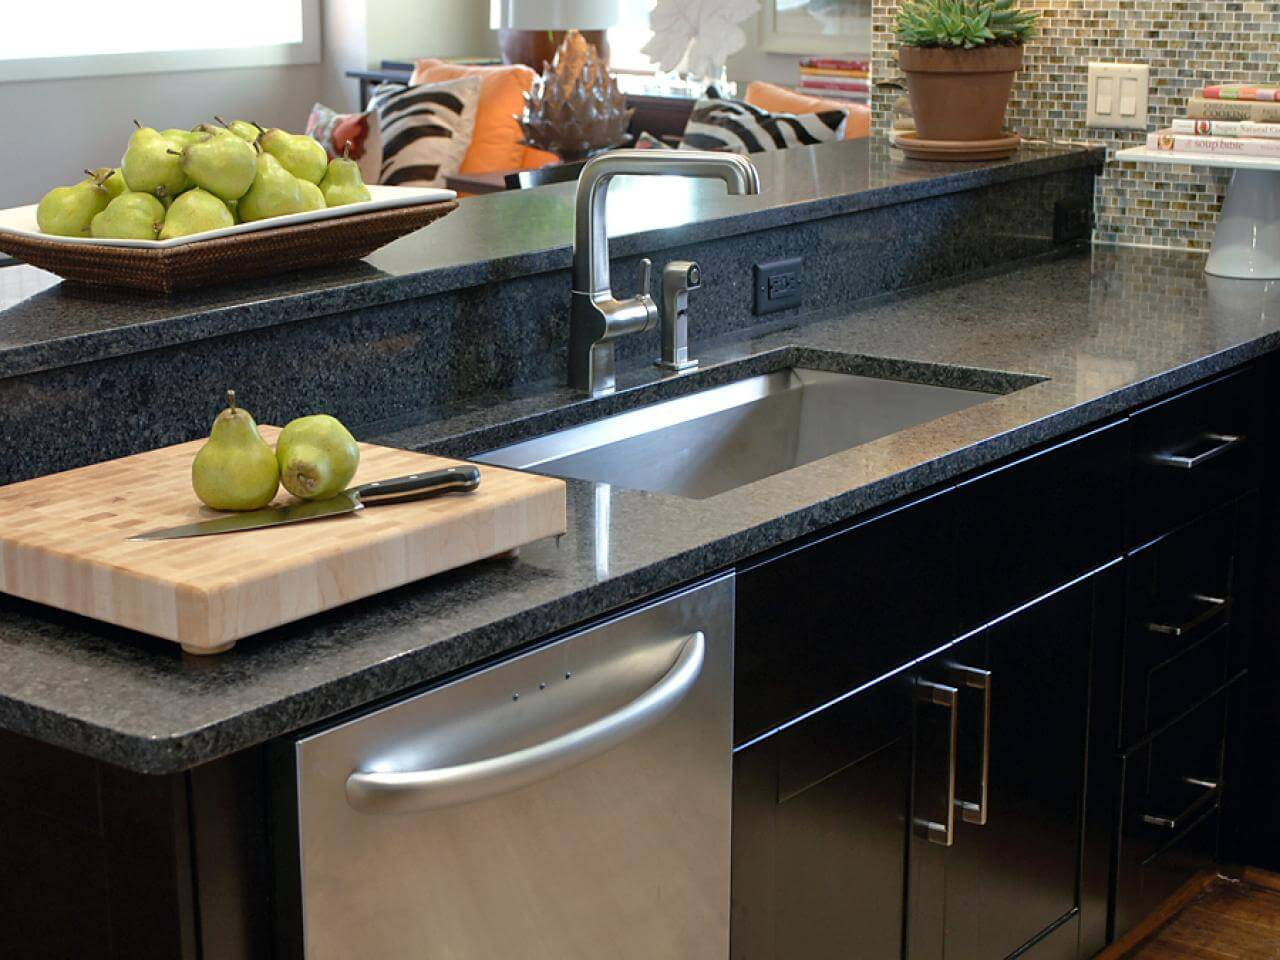 Kitchen plumbing systems made easy